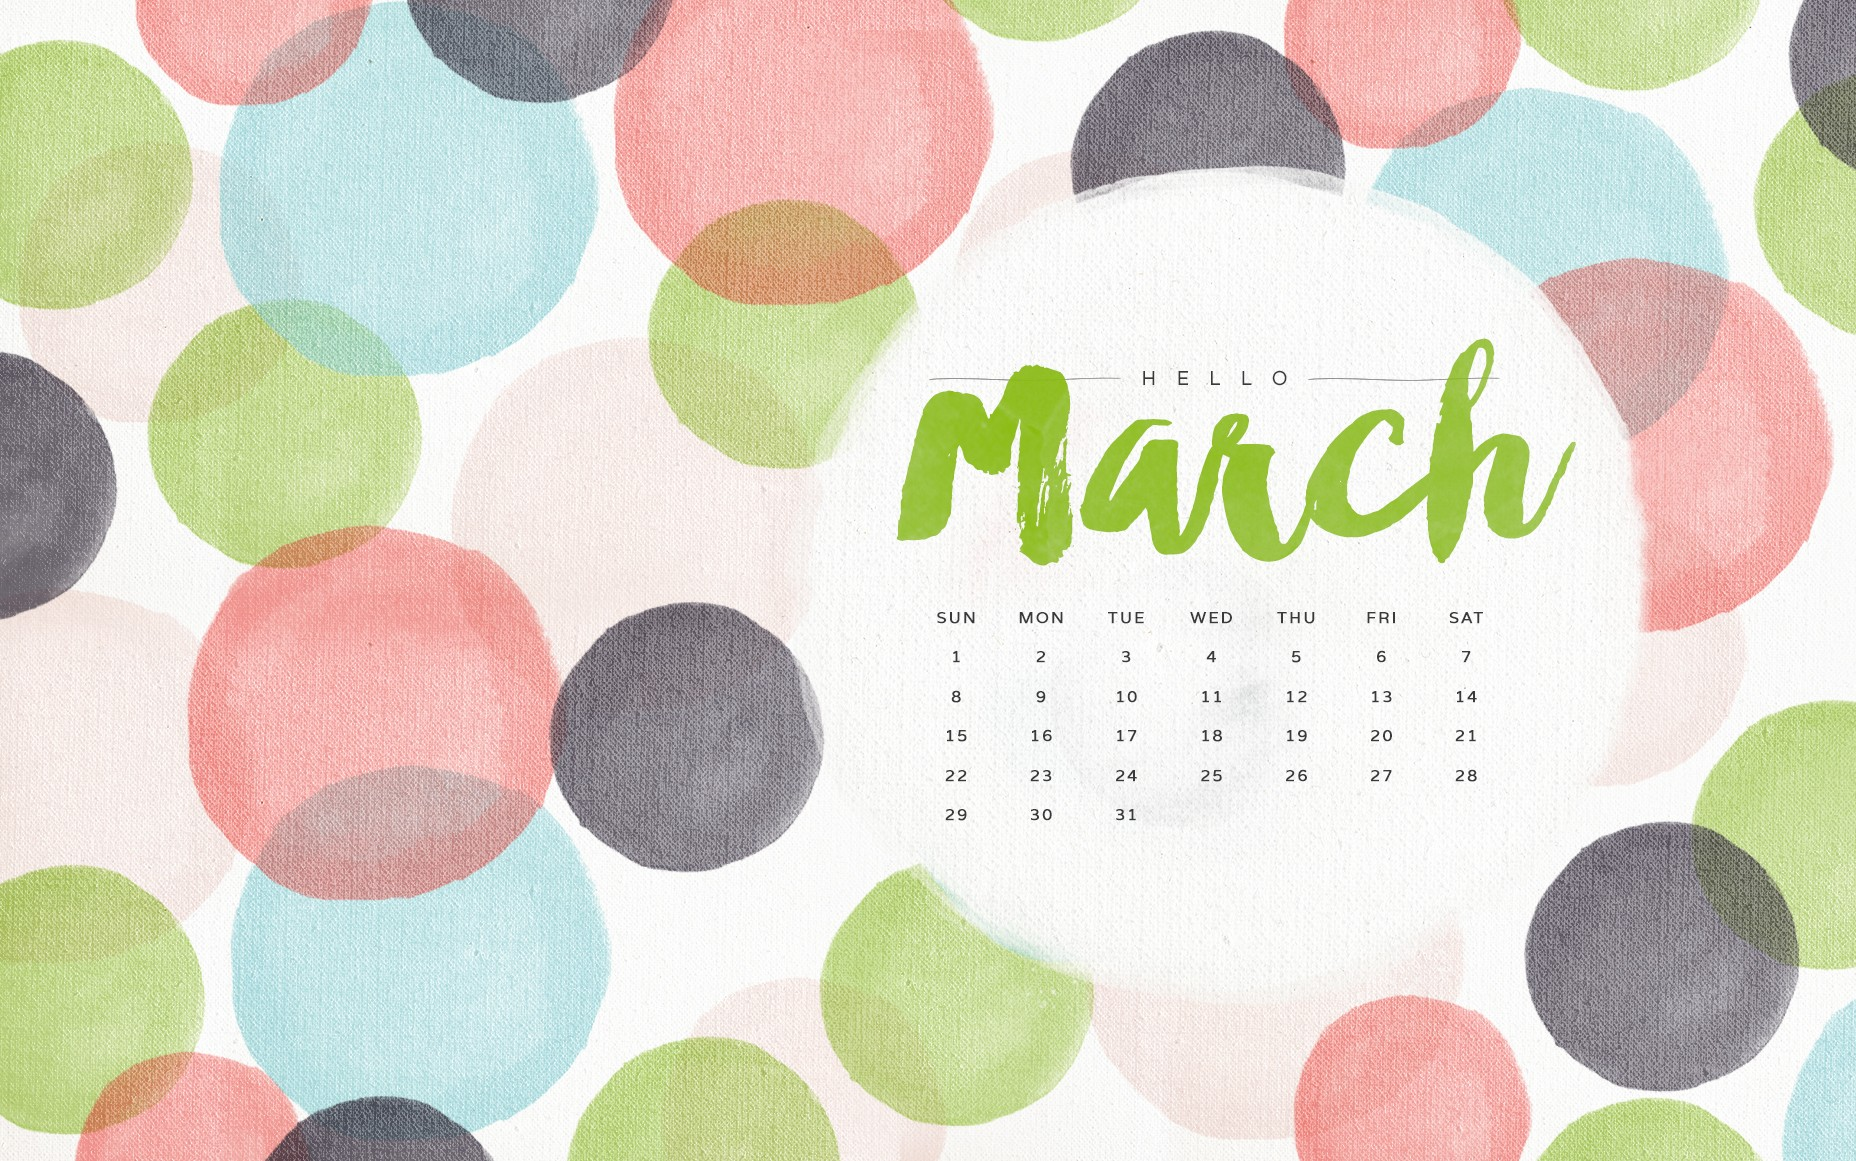 March Calendar Desktop Wallpaper Más Populares List Of Synonyms and Antonyms Of the Word iPhone Background March Of March Calendar Desktop Wallpaper Más Actual March 2019 Desktop Background Calendar